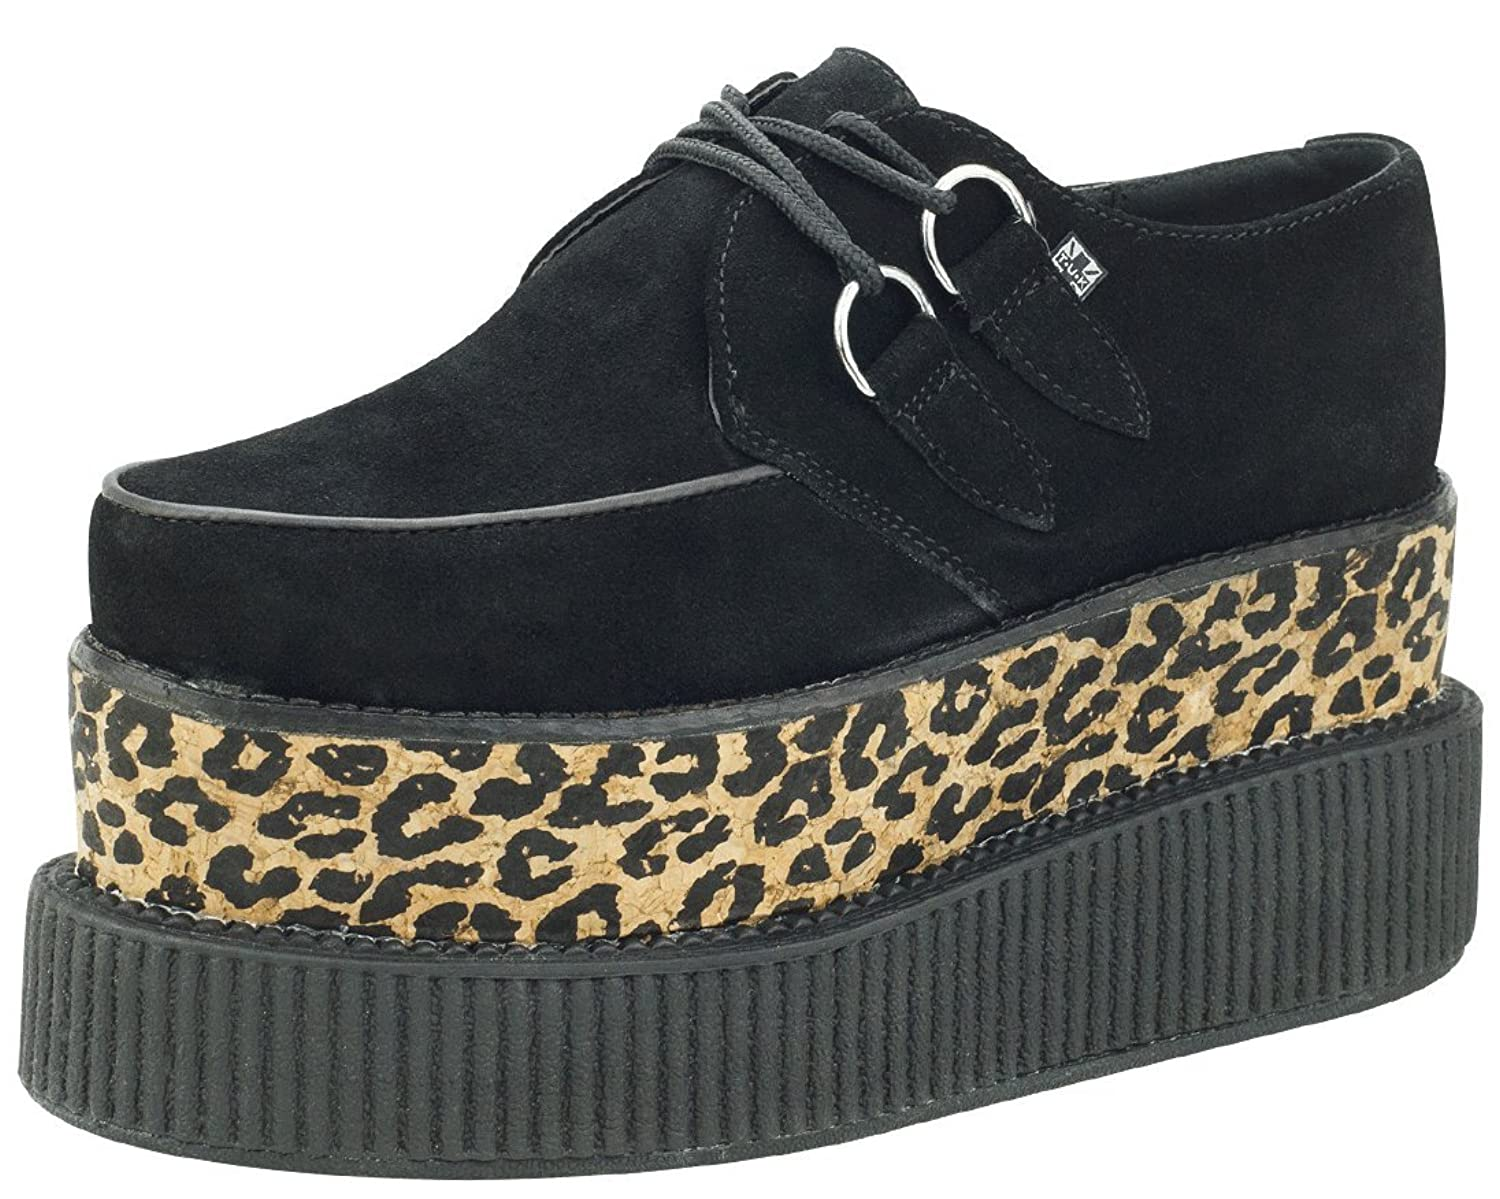 T.U.K. Shoes Black Suede & Leopard Cork Double Stacked Mondo Viva Creeper  EU41 / UKW8 UKM7: Amazon.co.uk: Shoes & Bags